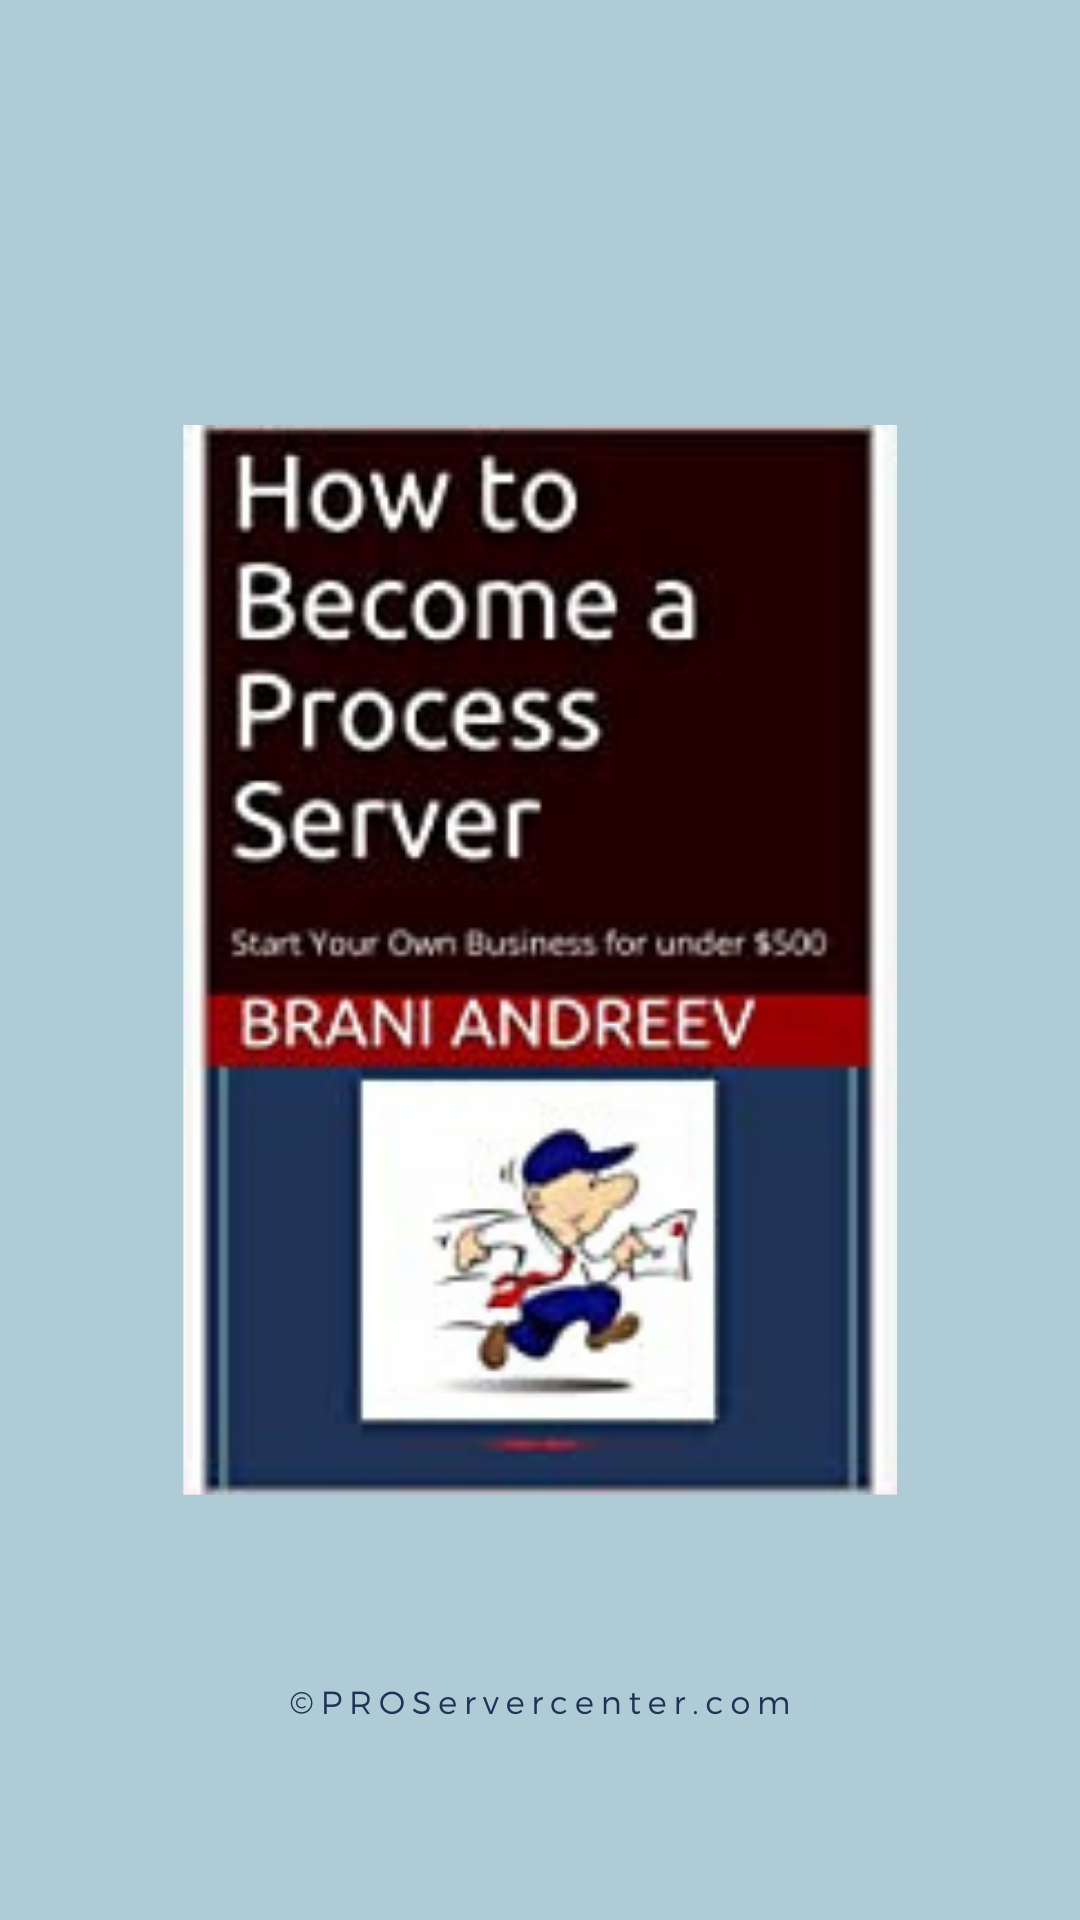 how to become a process server, amazon book